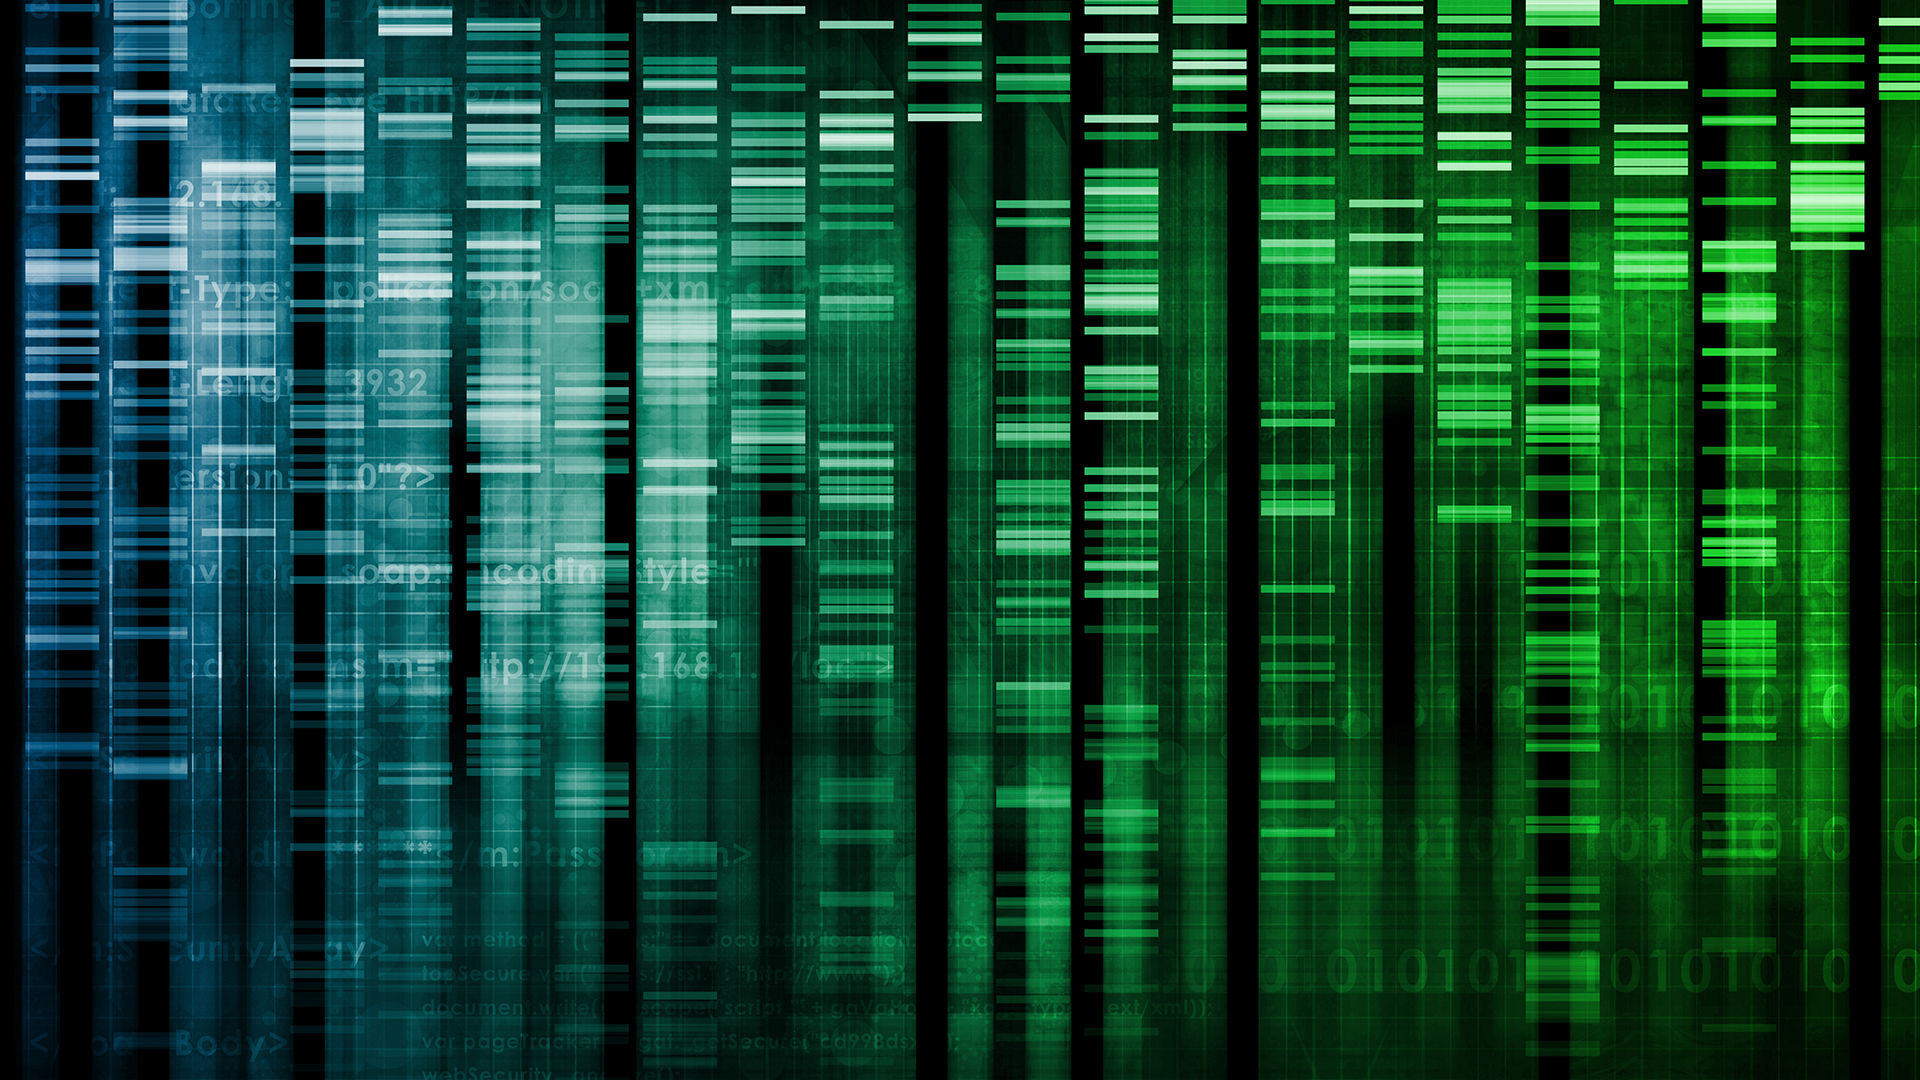 Short blue and green bars represent genome sequencing.